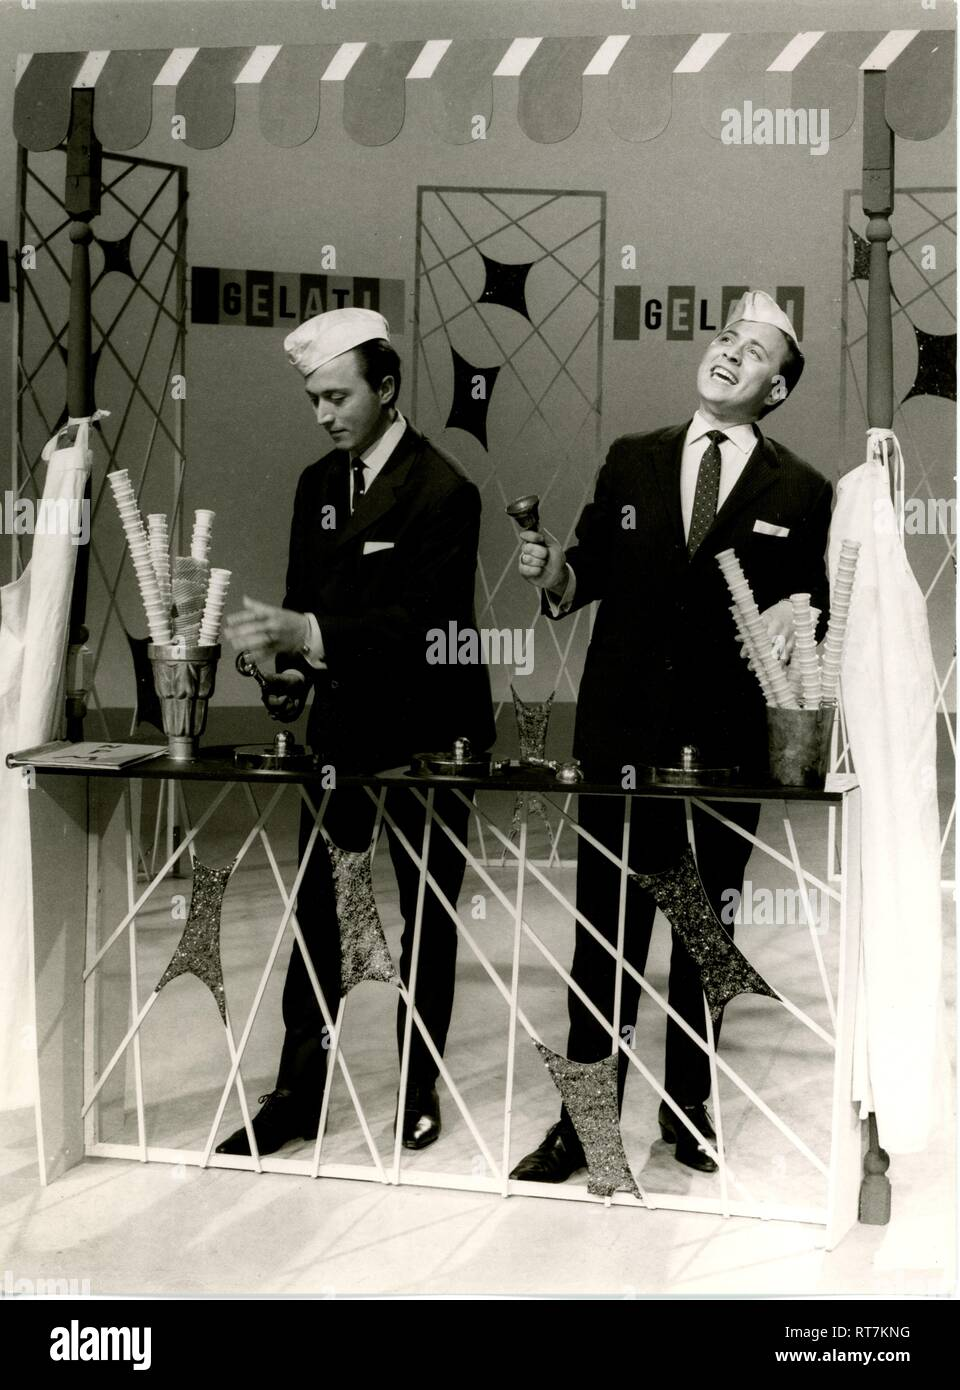 Stefano Twins, musicians (pop song), birth name: Bruno and Viktor di Stefano (* 25.9.1938), doing stage performance as icemen, 1960s, Additional-Rights-Clearance-Info-Not-Available - Stock Image